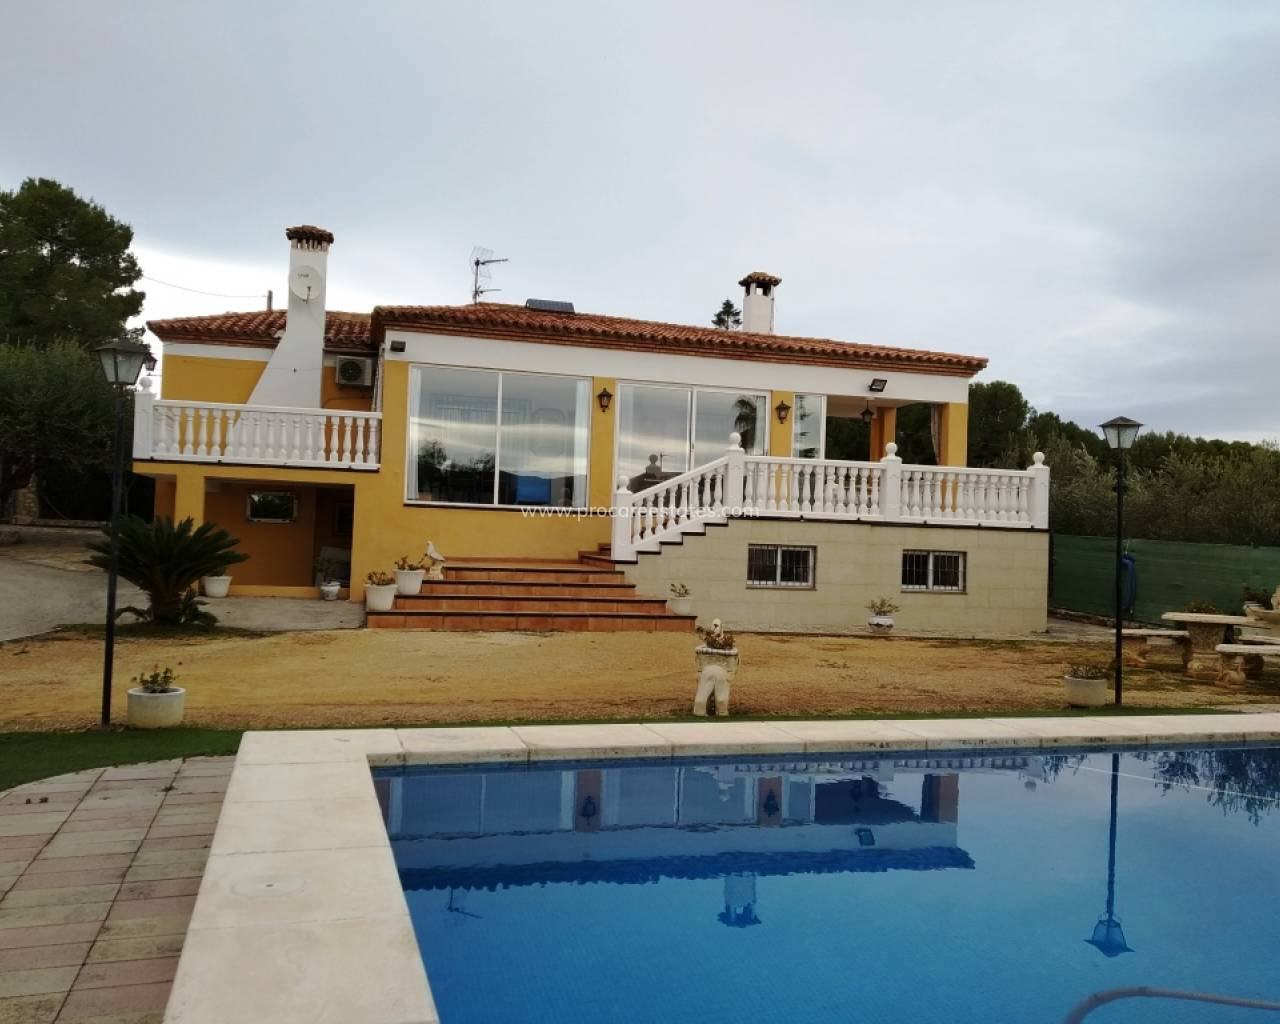 Revente - Country Property - Ontinyent